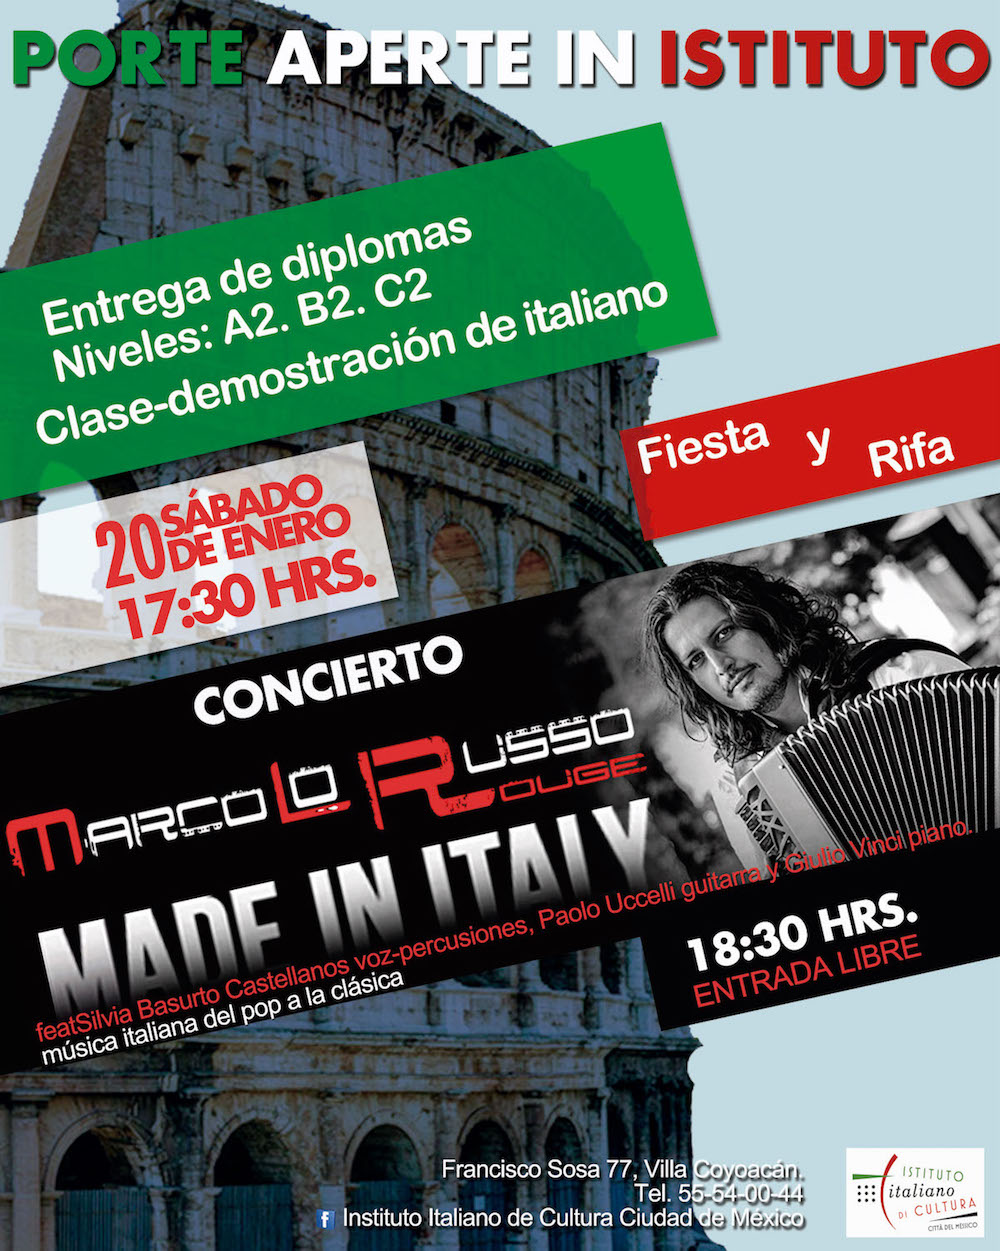 Made in Italy concert at Italian Institute of Culture, Mexico City ...